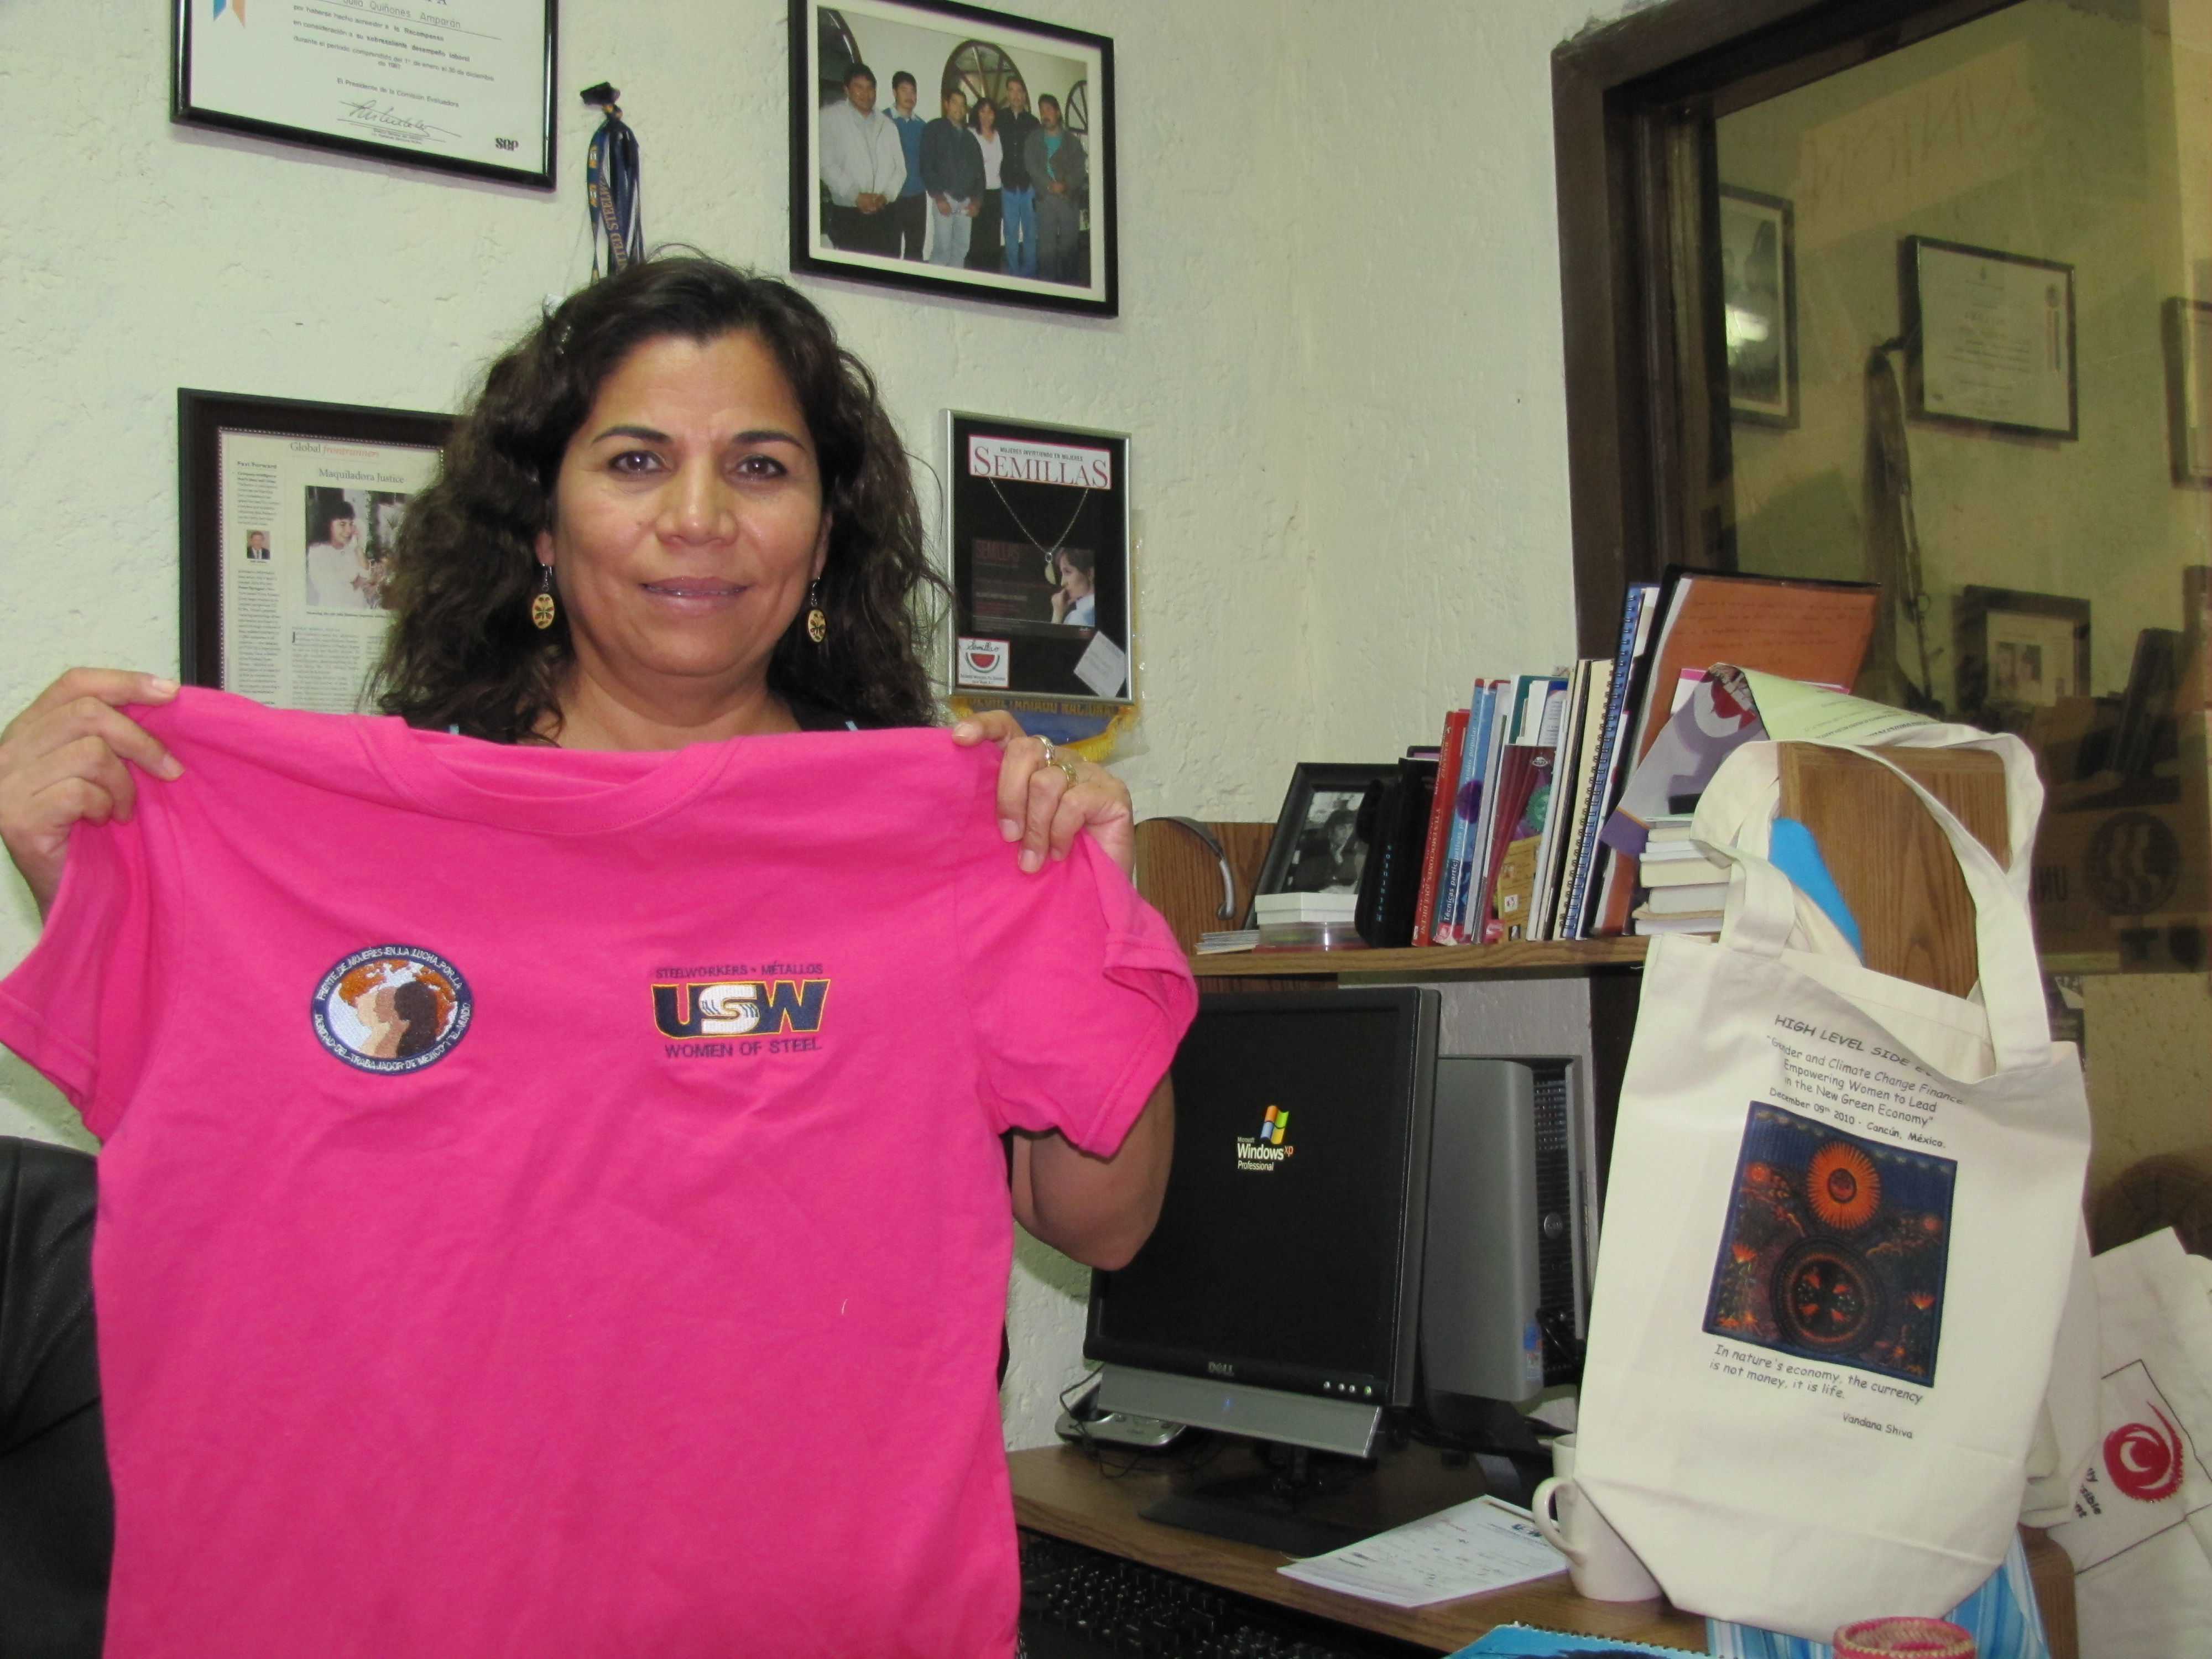 Julia Quinonez, president of the Border Committee of Women Workers in Piedras Negras, Mexico, shows a T-shirt the organization makes at its small textile shop.